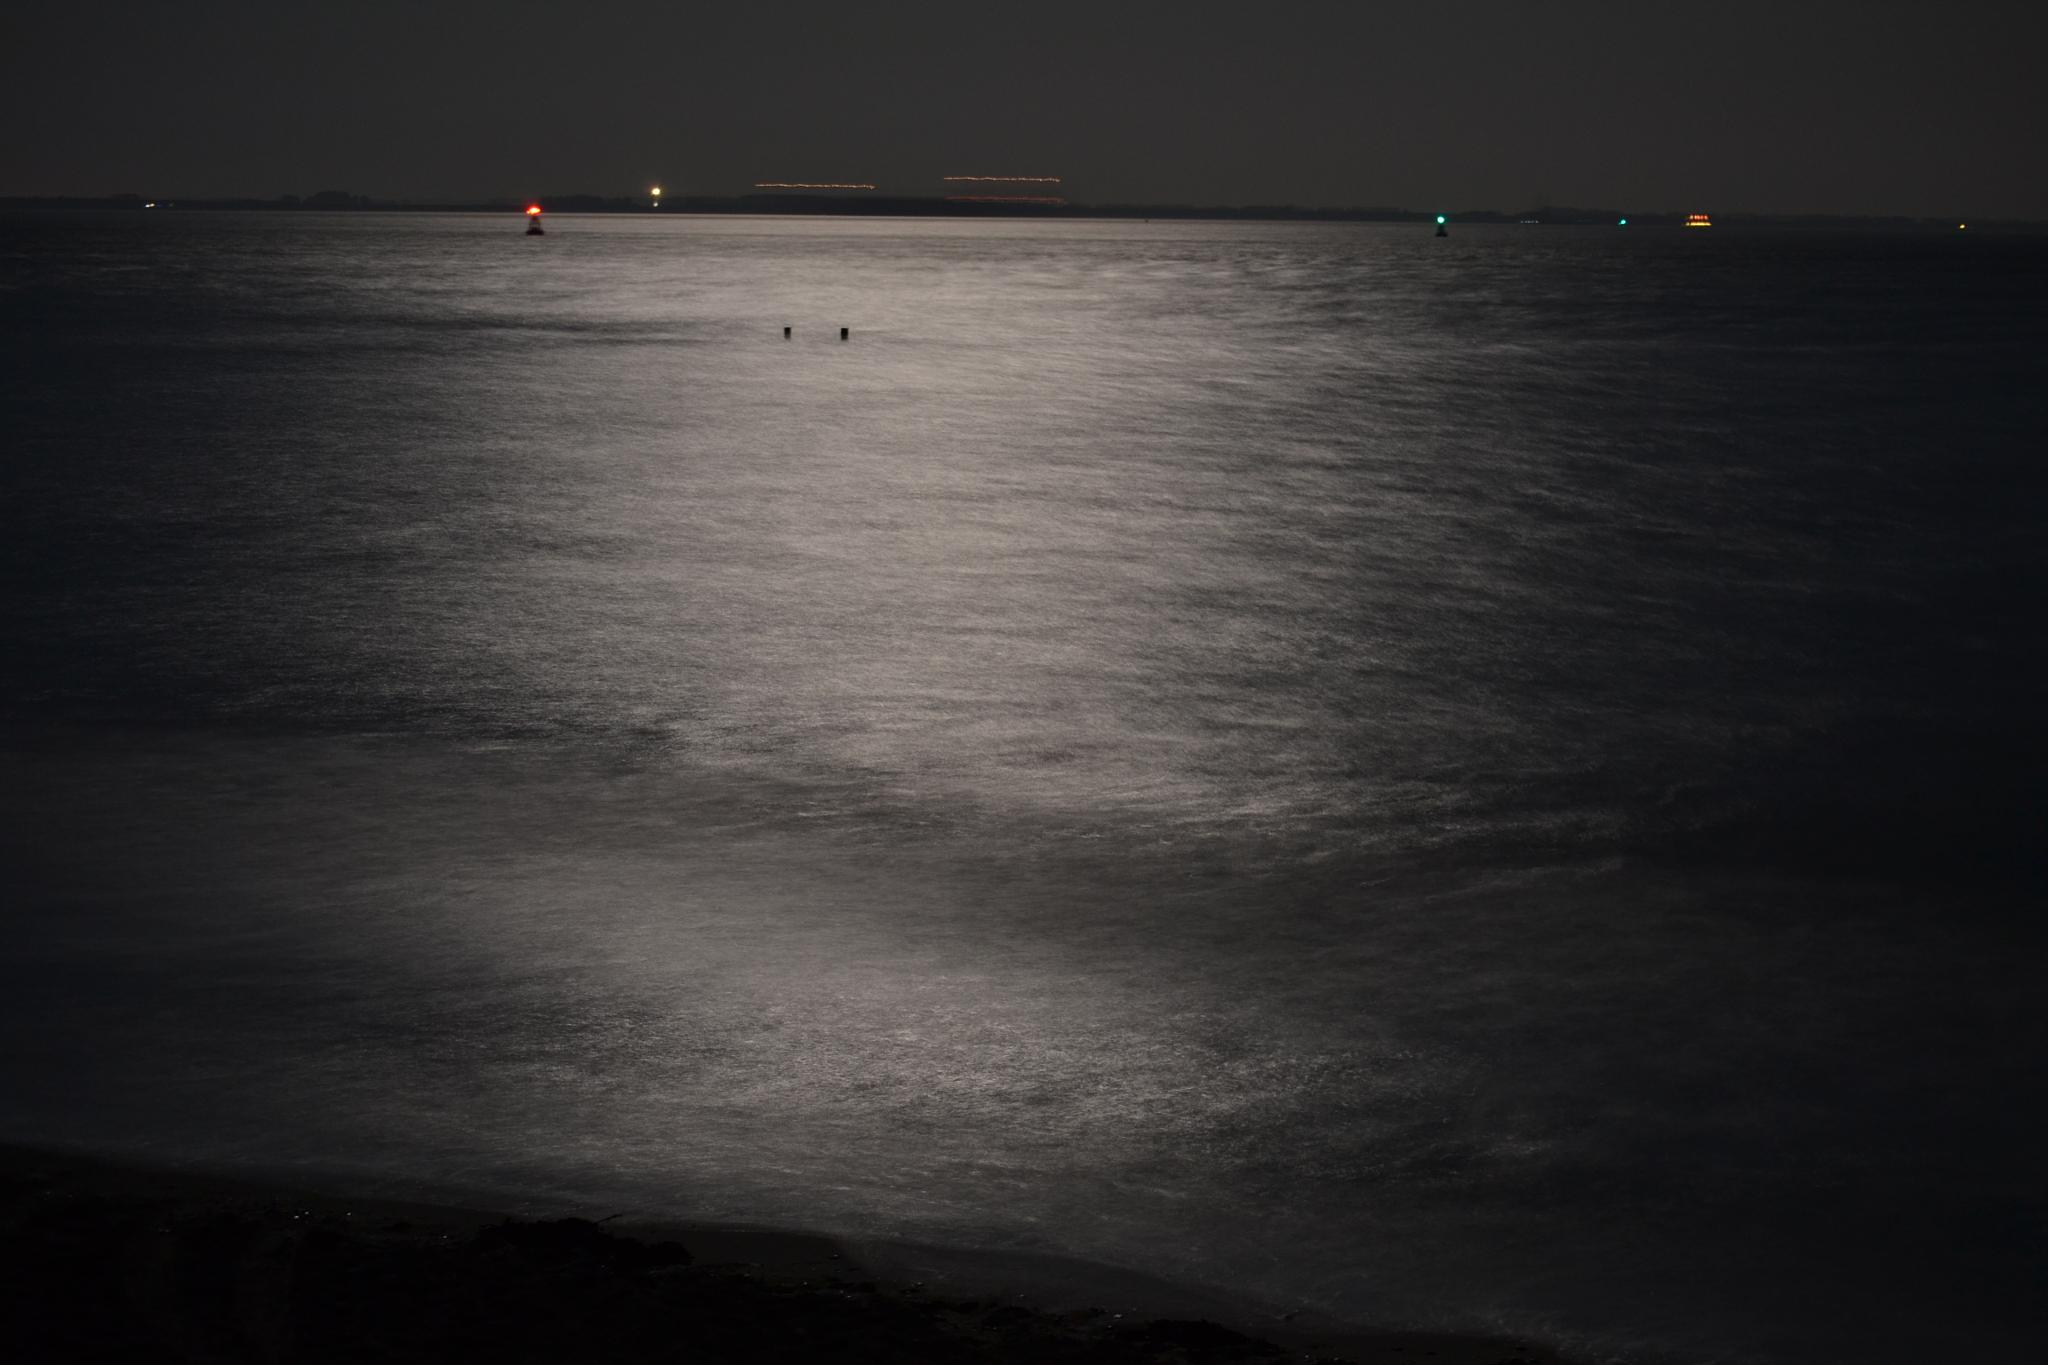 moonlight 3am by daan.hoogendijk